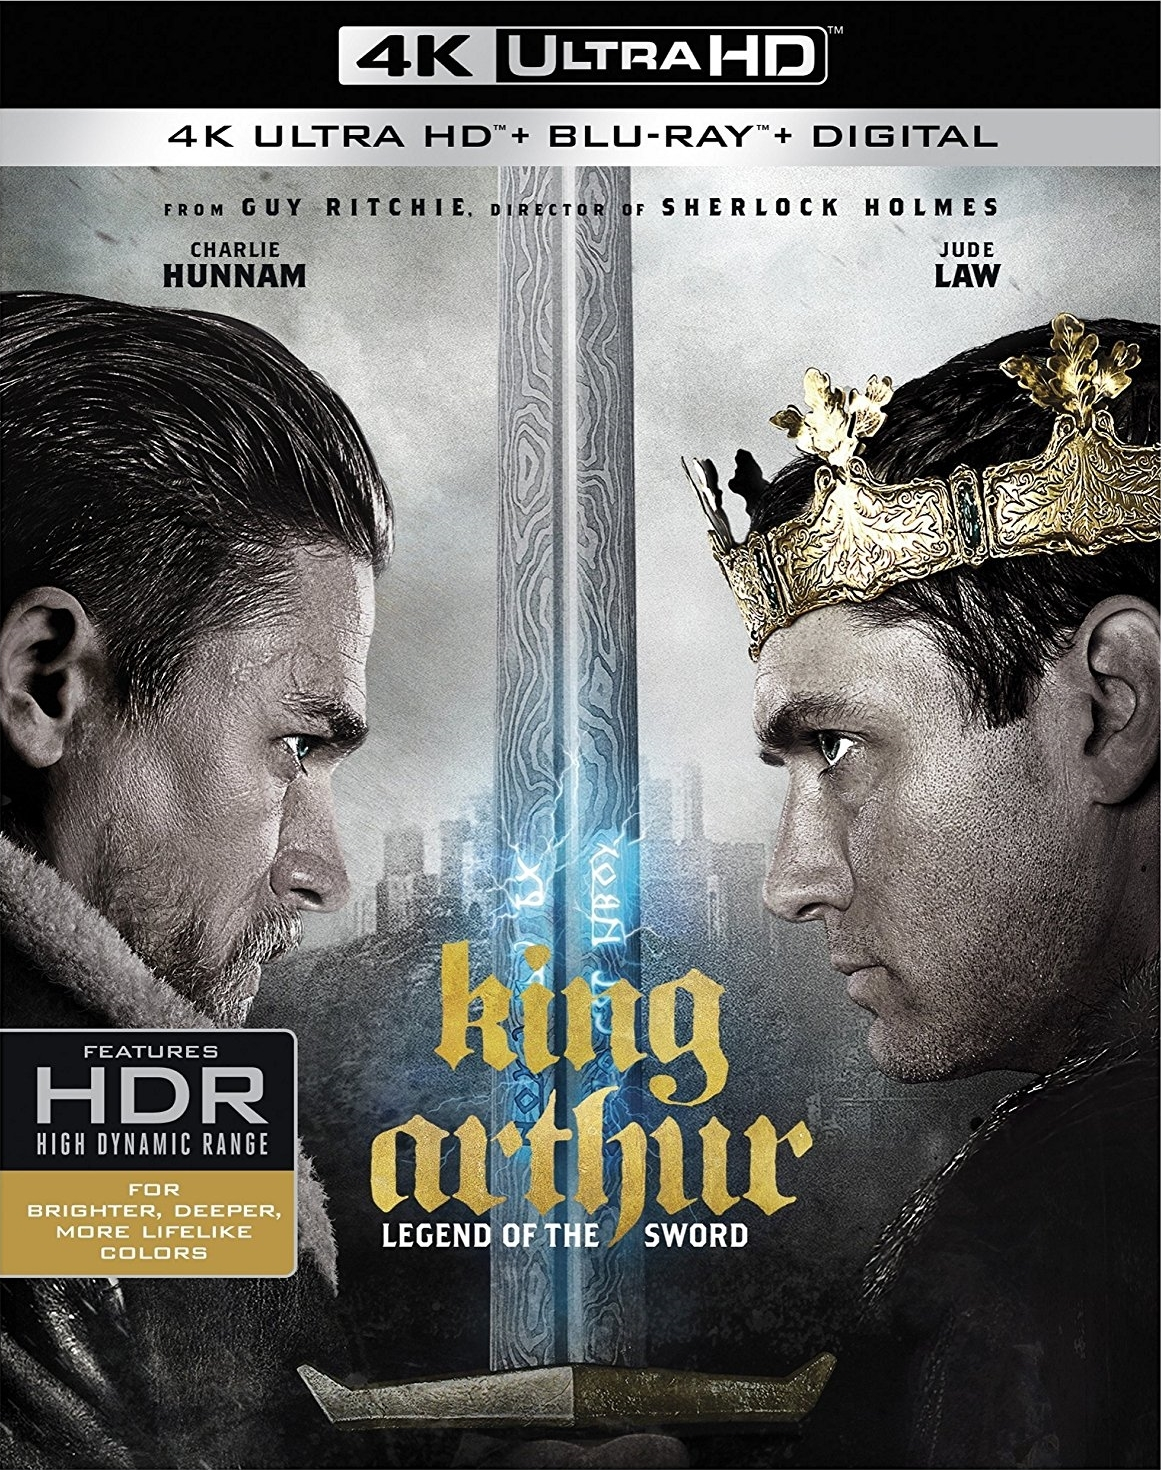 King Arthur: Legend of the Sword 4K (2017) UHD Ultra HD Blu-ray